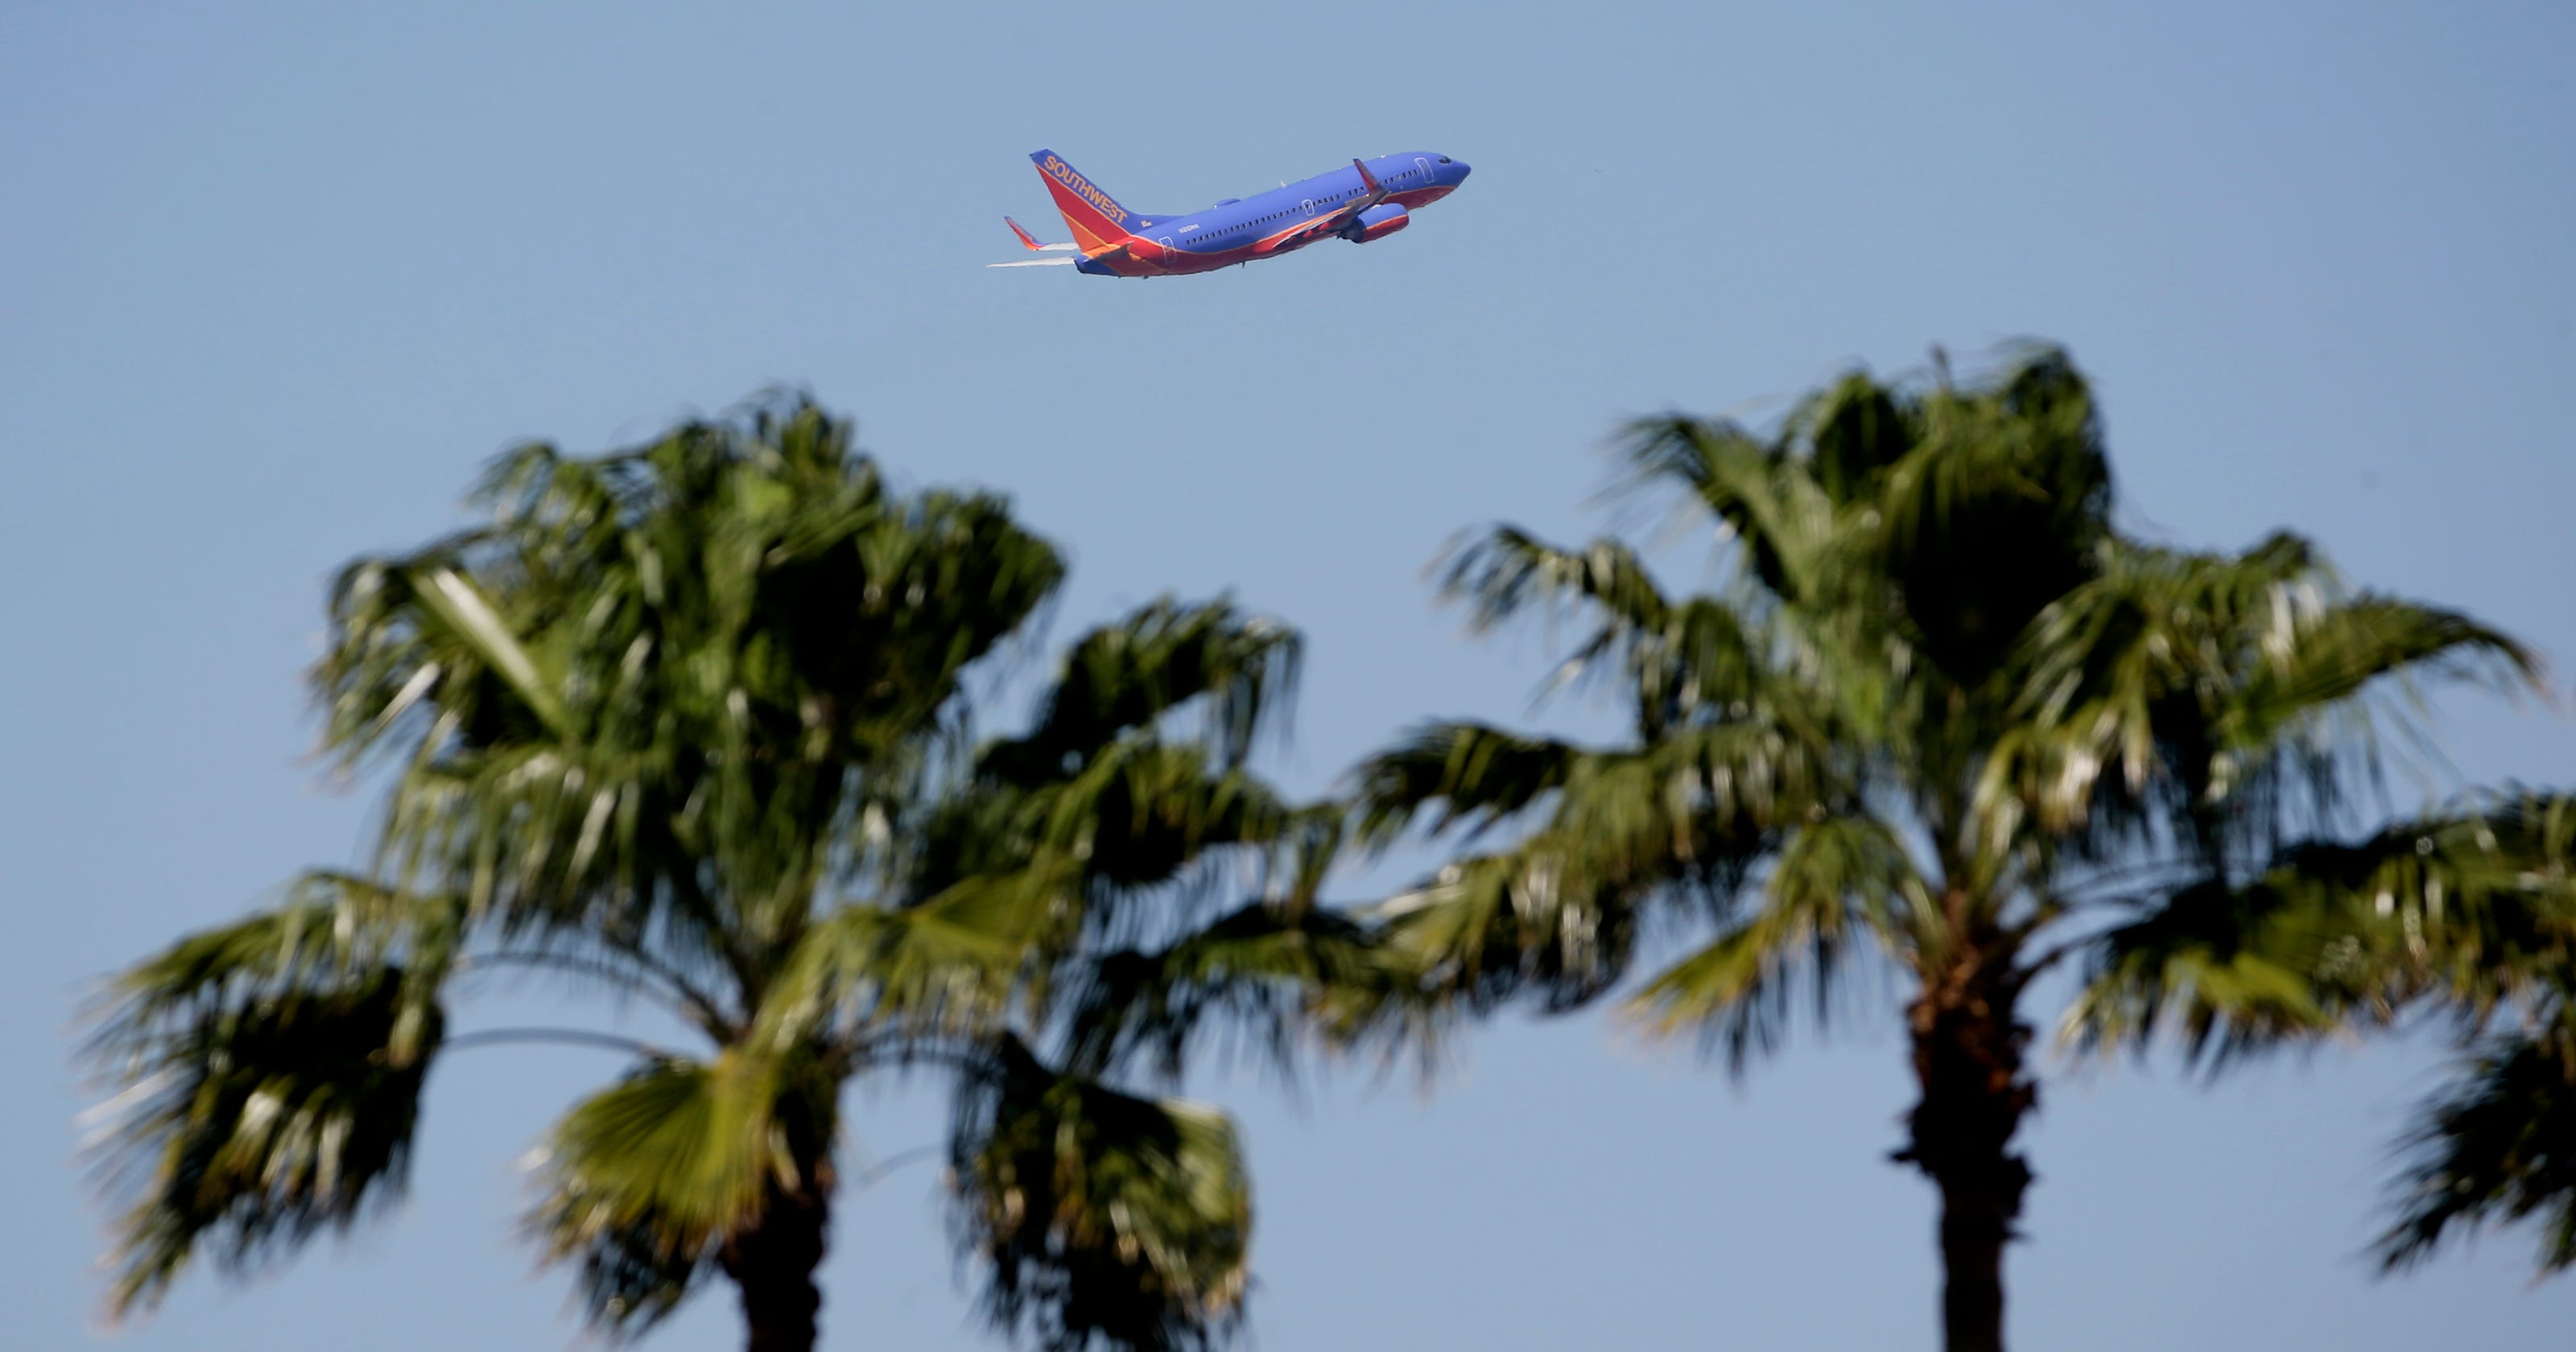 Airfare Expert: The cheapest days of the week to fly